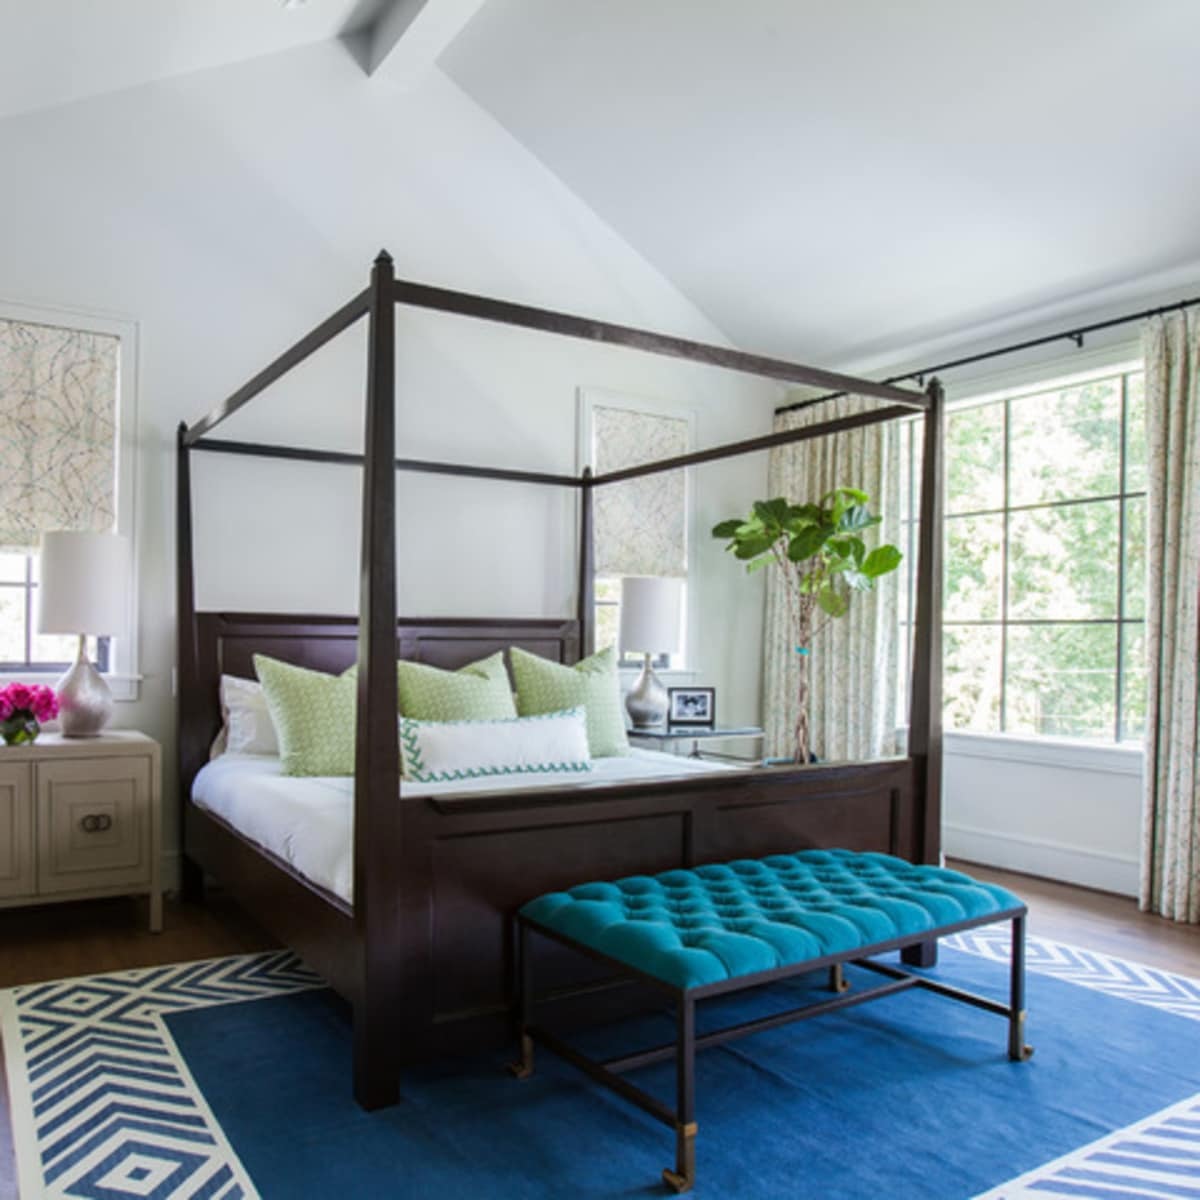 Houzz Houston house home Southern Americana Spanish colonial June 2016 bedroom